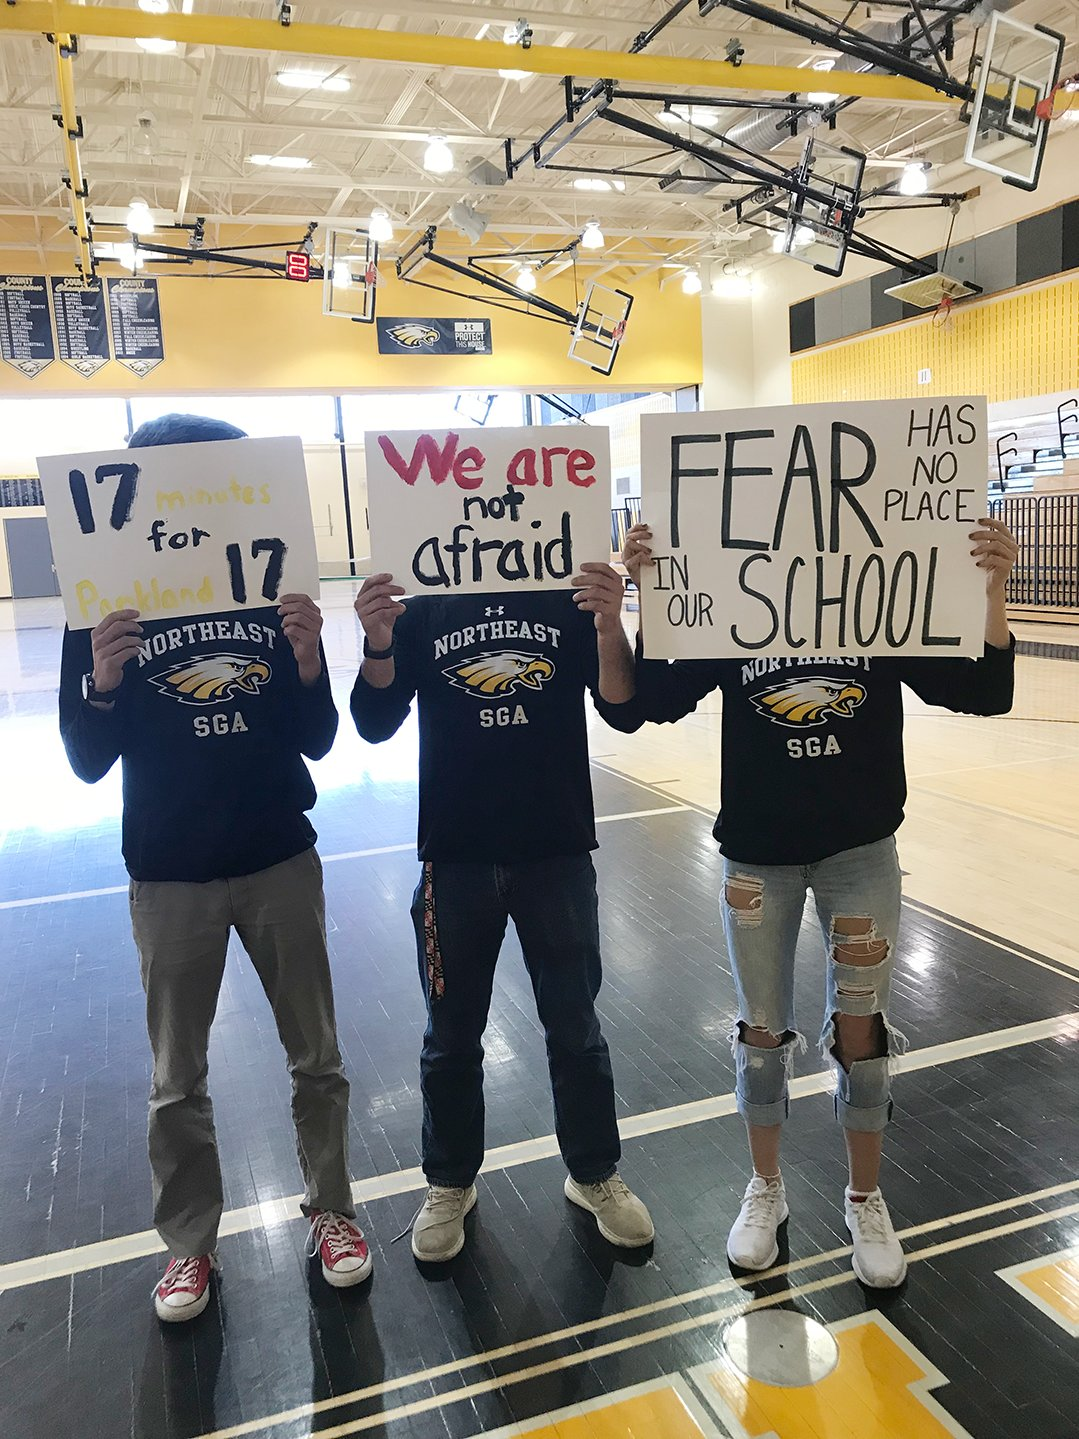 While students across the country walked out of their schools on March 14 to honor the 17 victims of the school shooting in Parkland, Florida, one month prior, Northeast students had a walk-in.